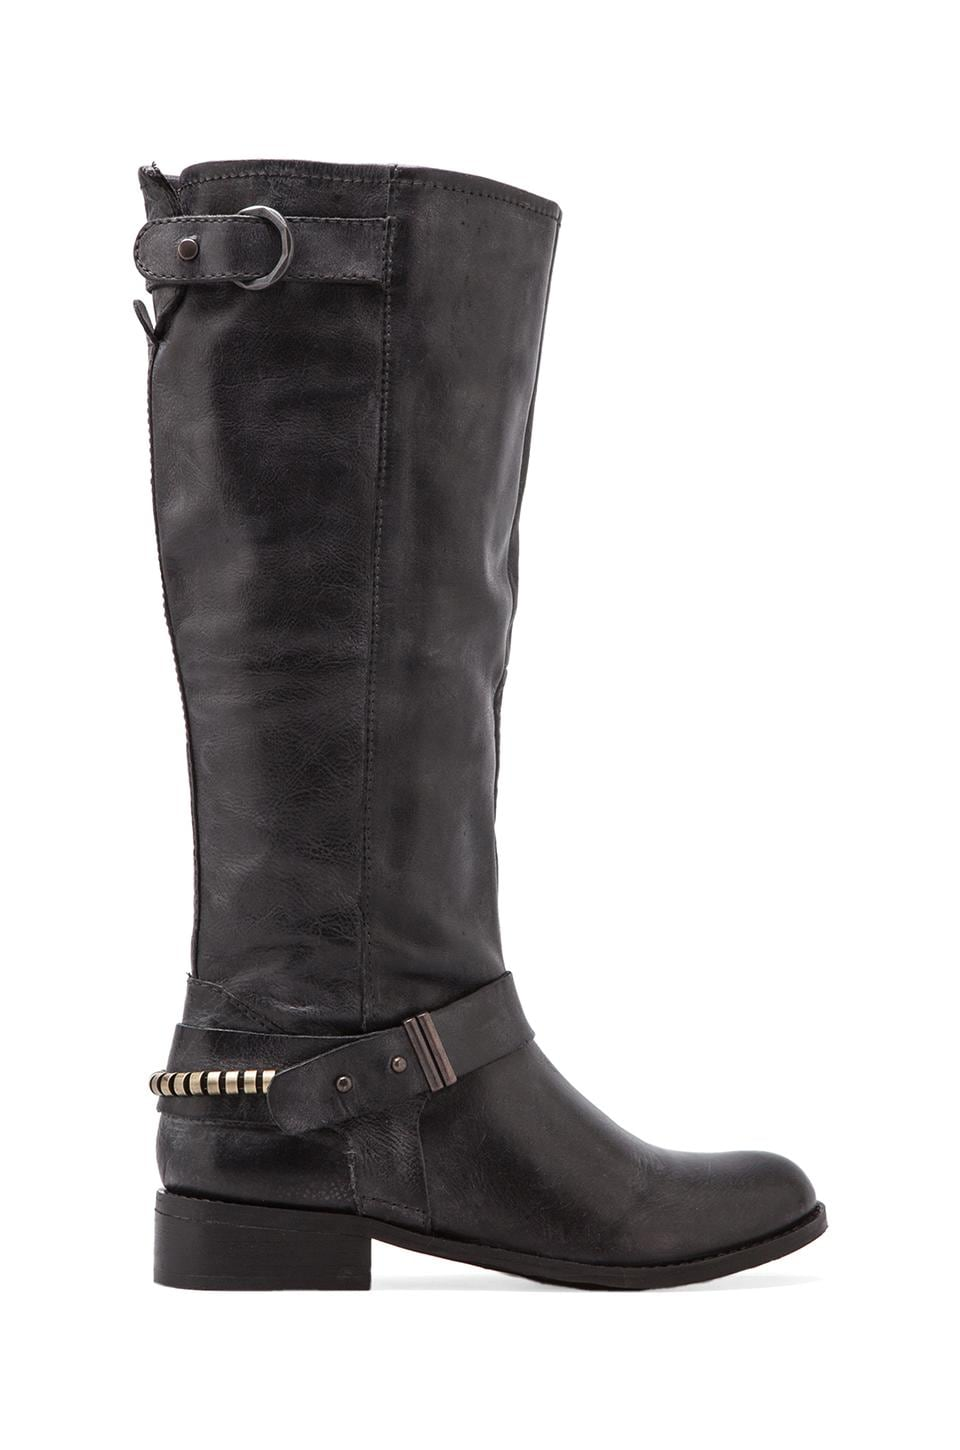 Steven Ryley Boot in Black Distressed Leather